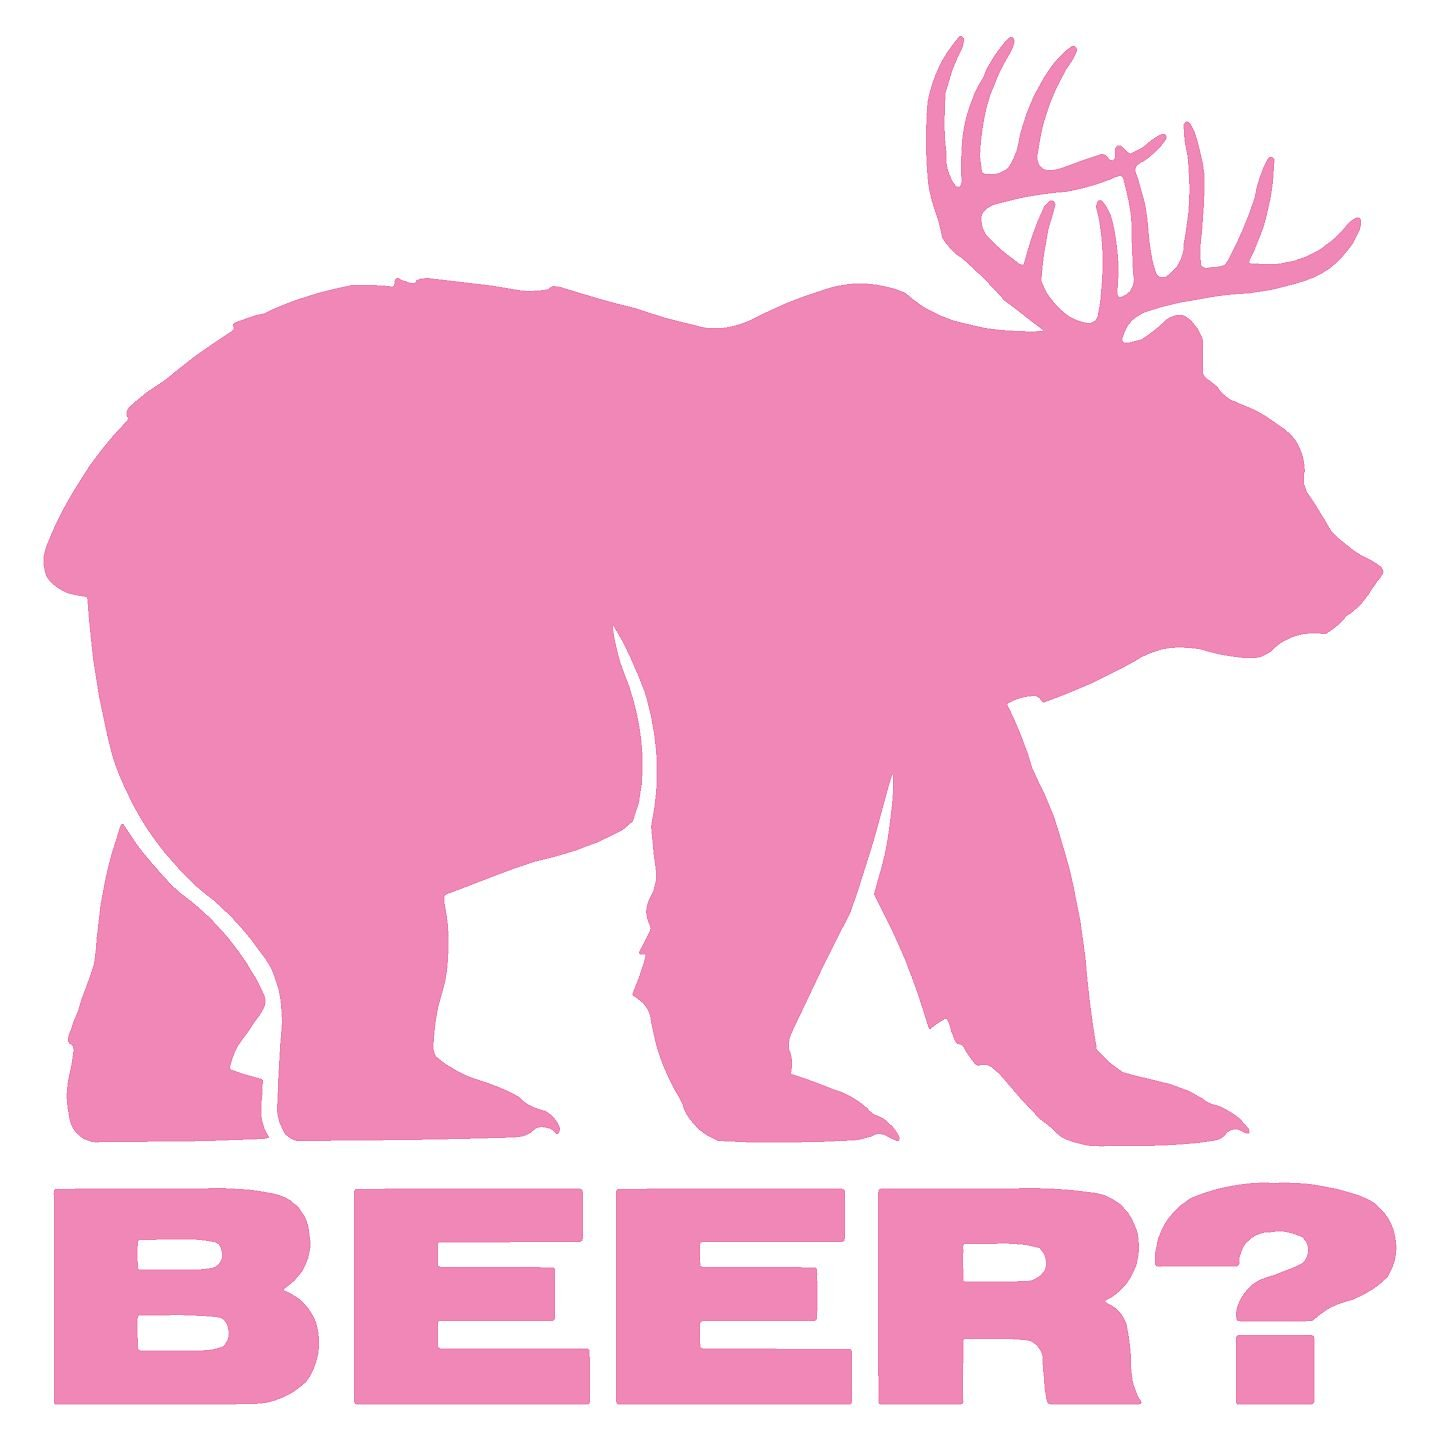 Bear plus Deer equals BEER Vinyl Die Cut Decal Sticker 5.50 White Decalorize Decalorize-B+B5.5